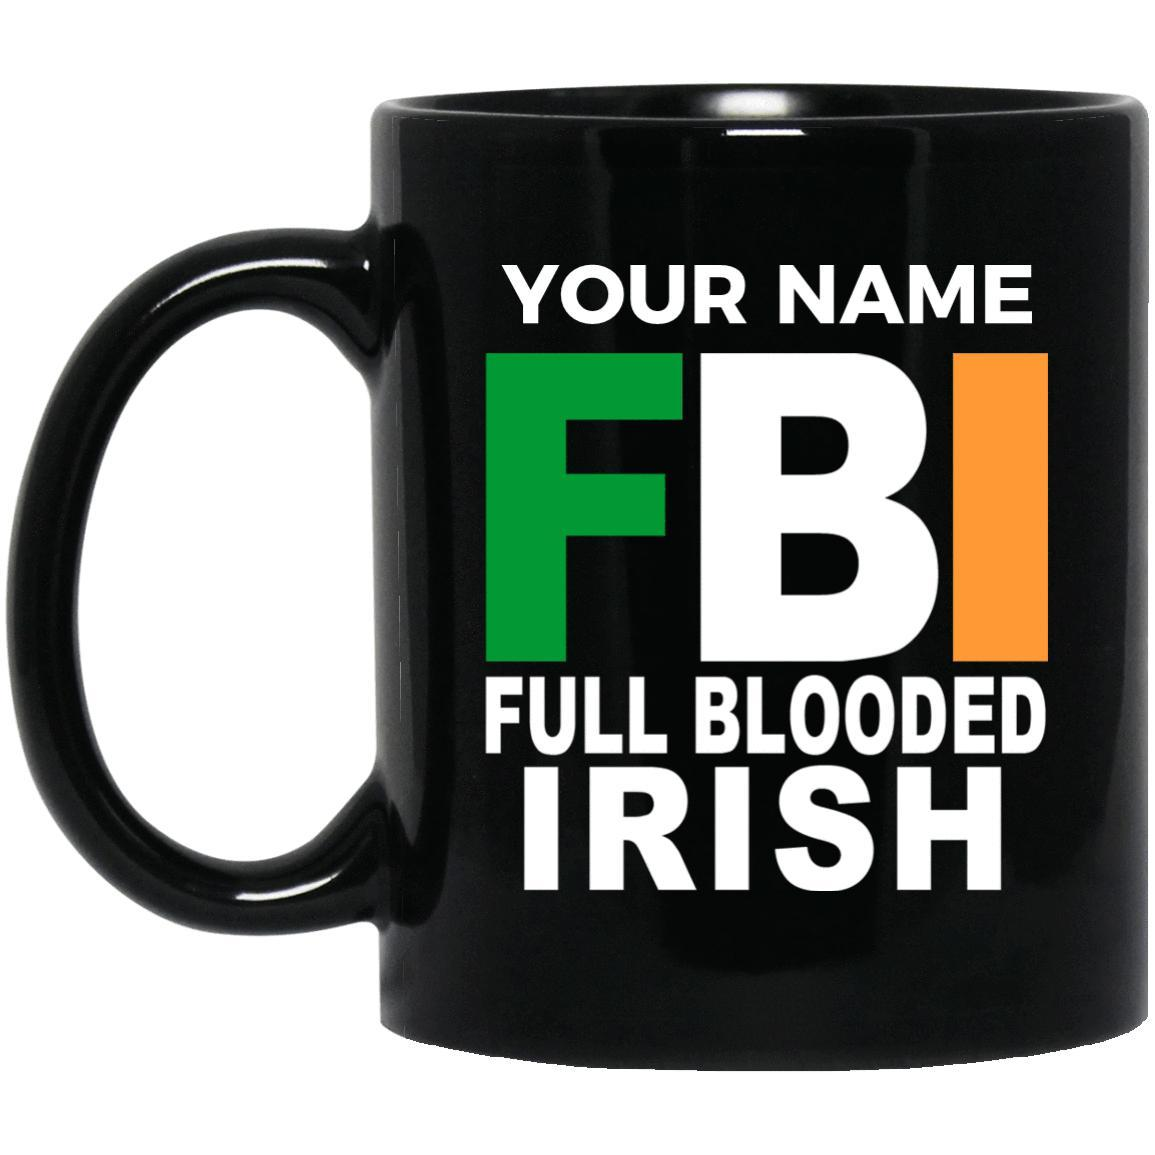 FBI Full Blooded Irish Mug - Put Your Name on it